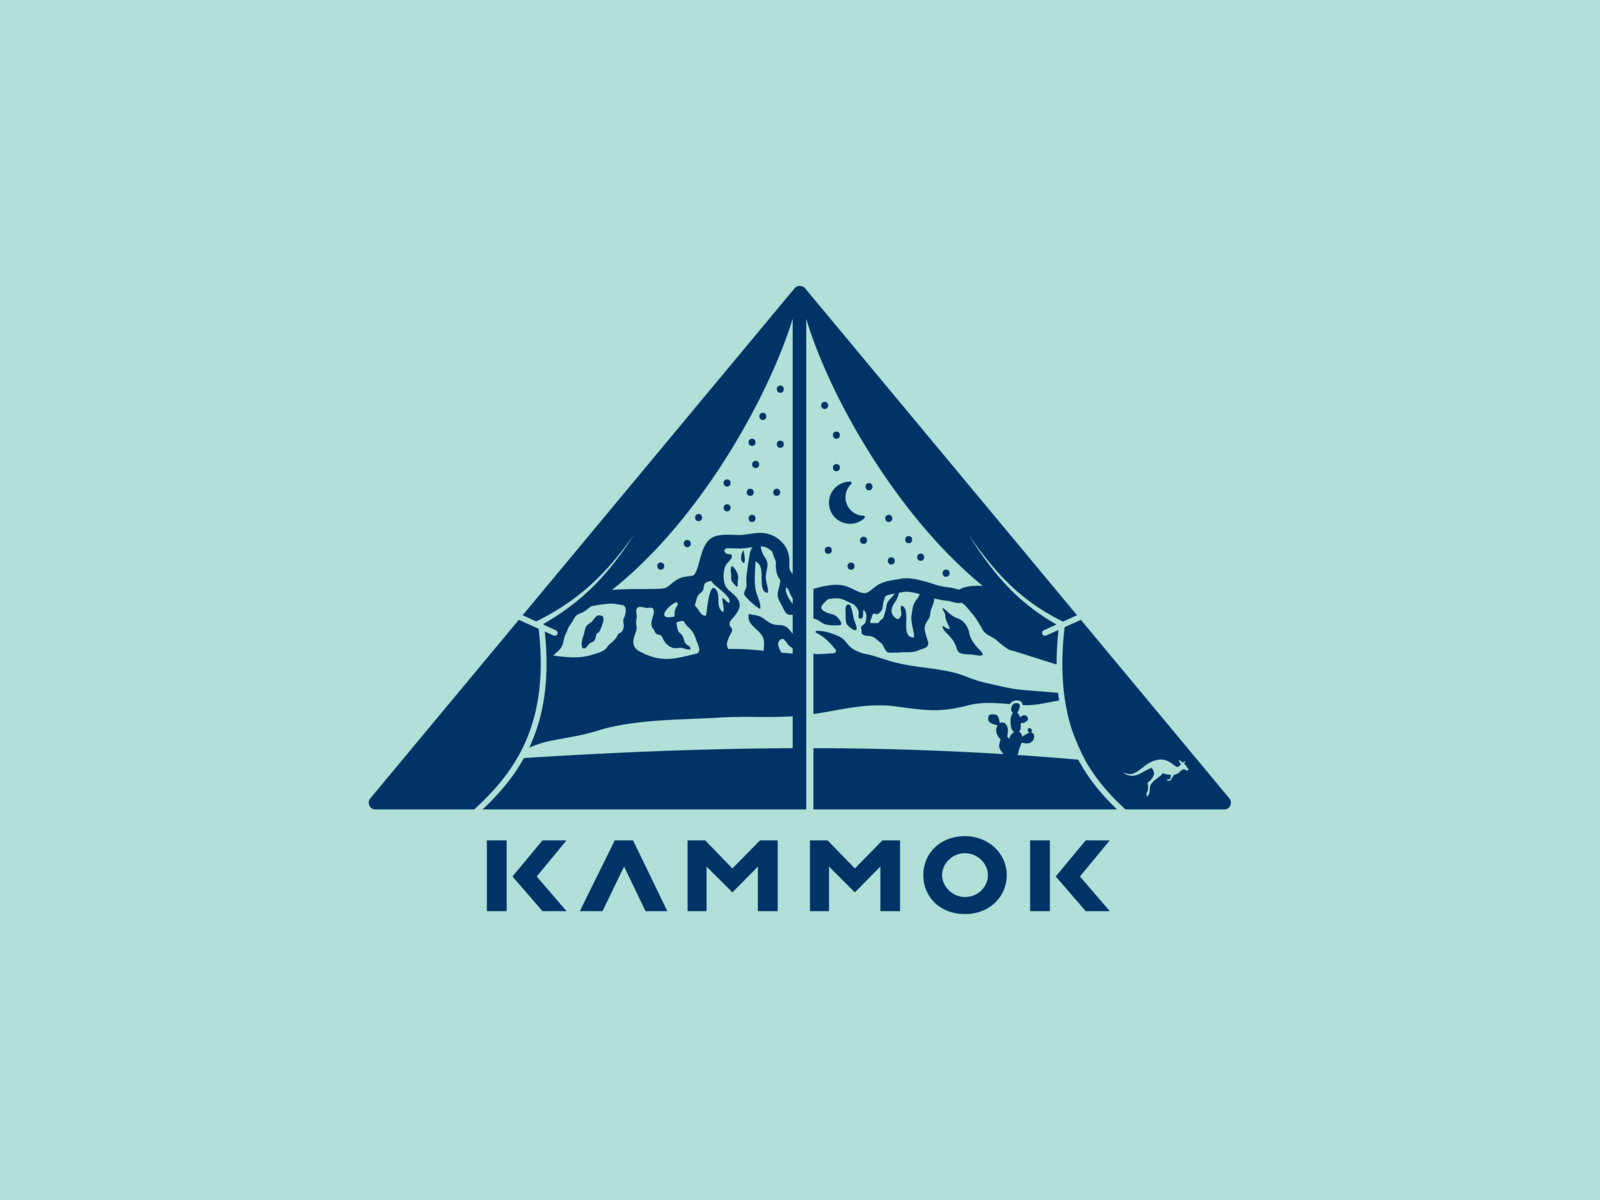 tent_views_-_kammok-01-01_4x.png